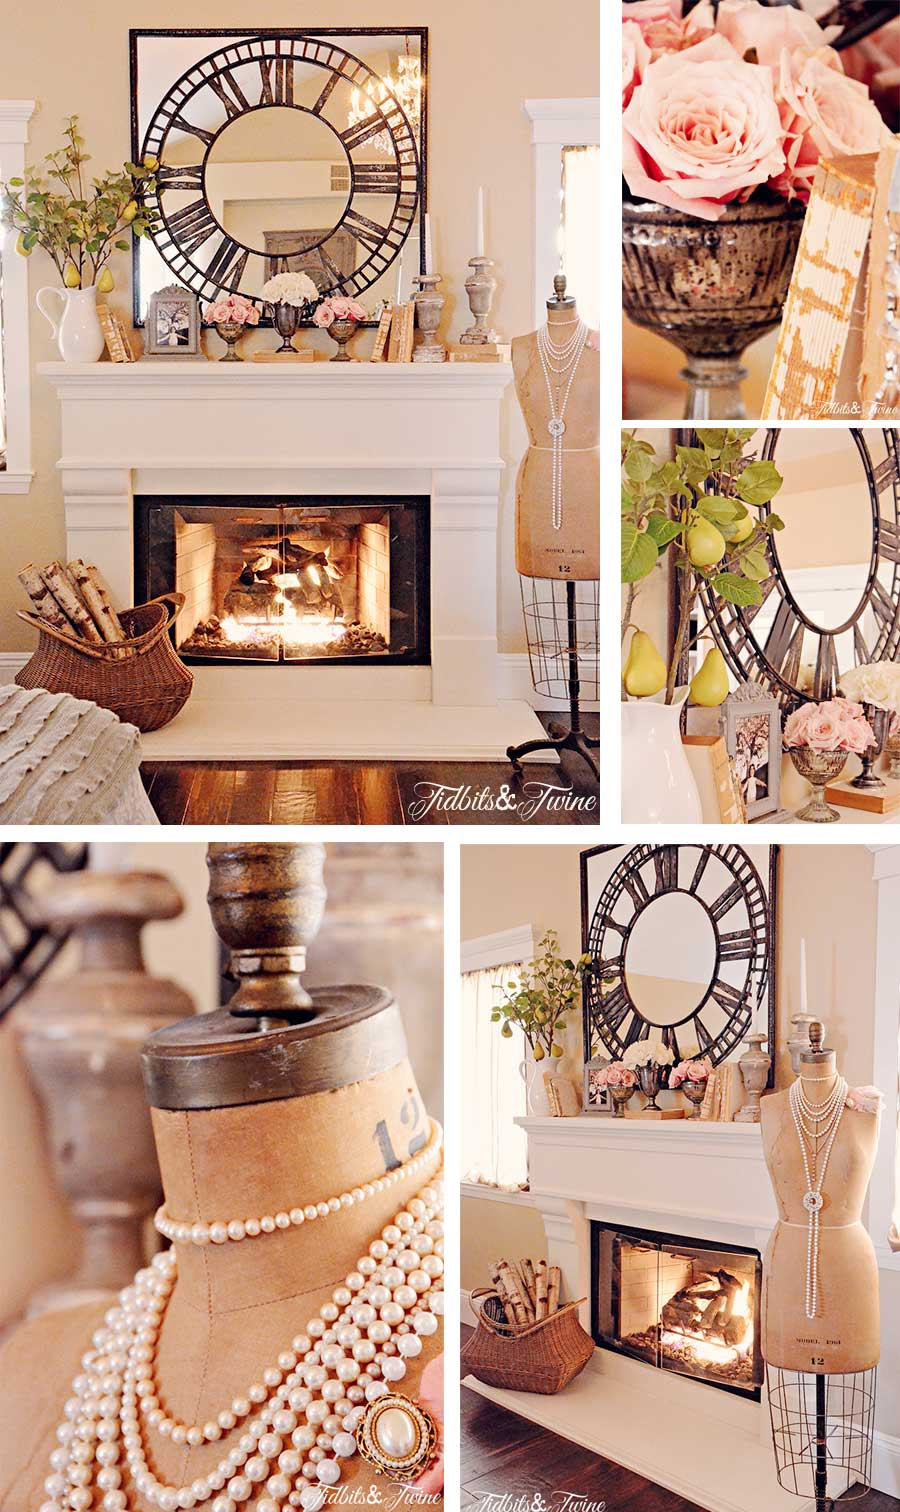 master bedroom fireplace mantel decorated with oversized clock mirror and antique books